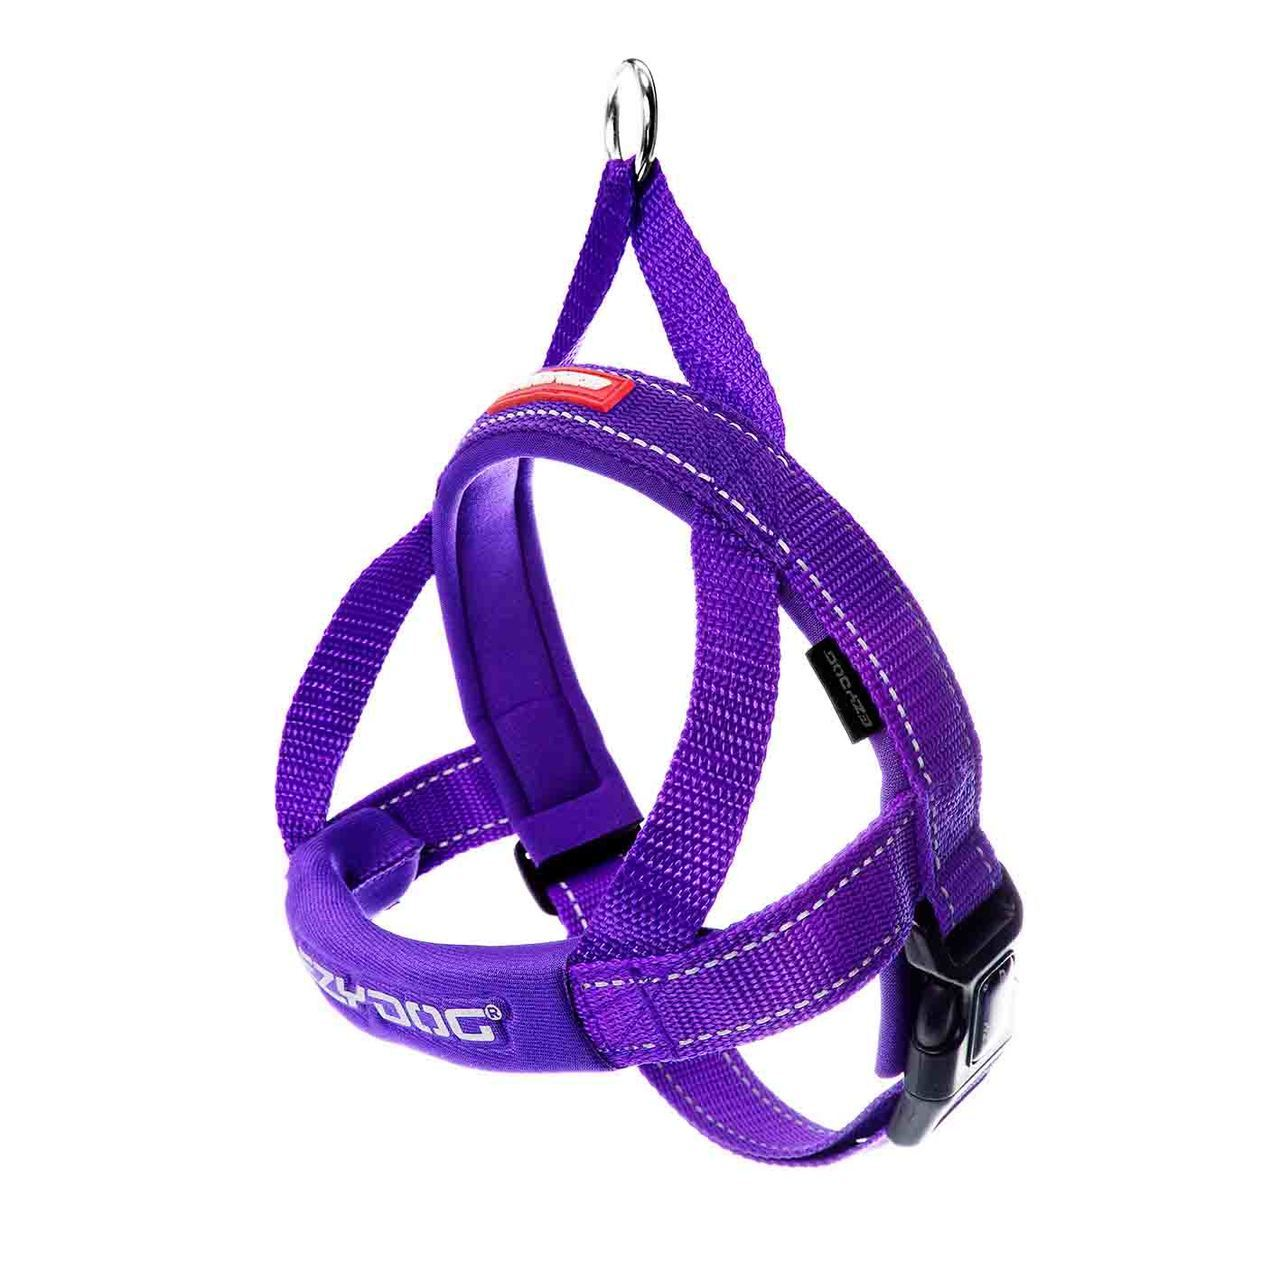 EZYDOG Quick Fit™ Dog Harness in Purple